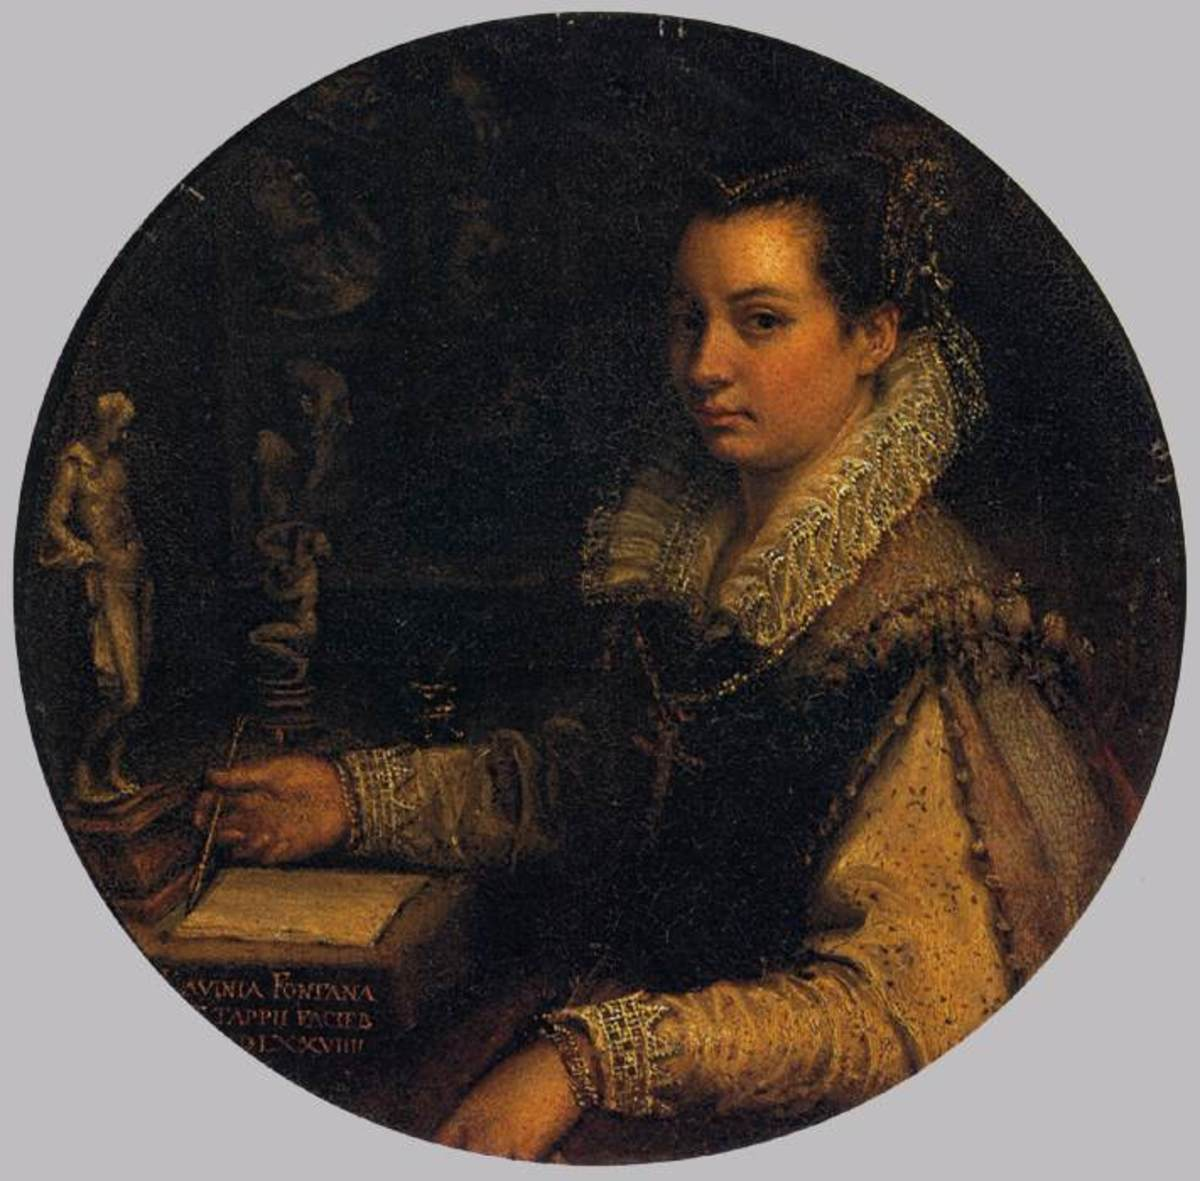 L. Fontana, Self Portrait (1579), Florence Uffizi  Lavinia pays great attention to her public image and portrays herself formally dressed at the desk of the study, full of antiquities. The painting is signed also with the name of her husband (Zappi).